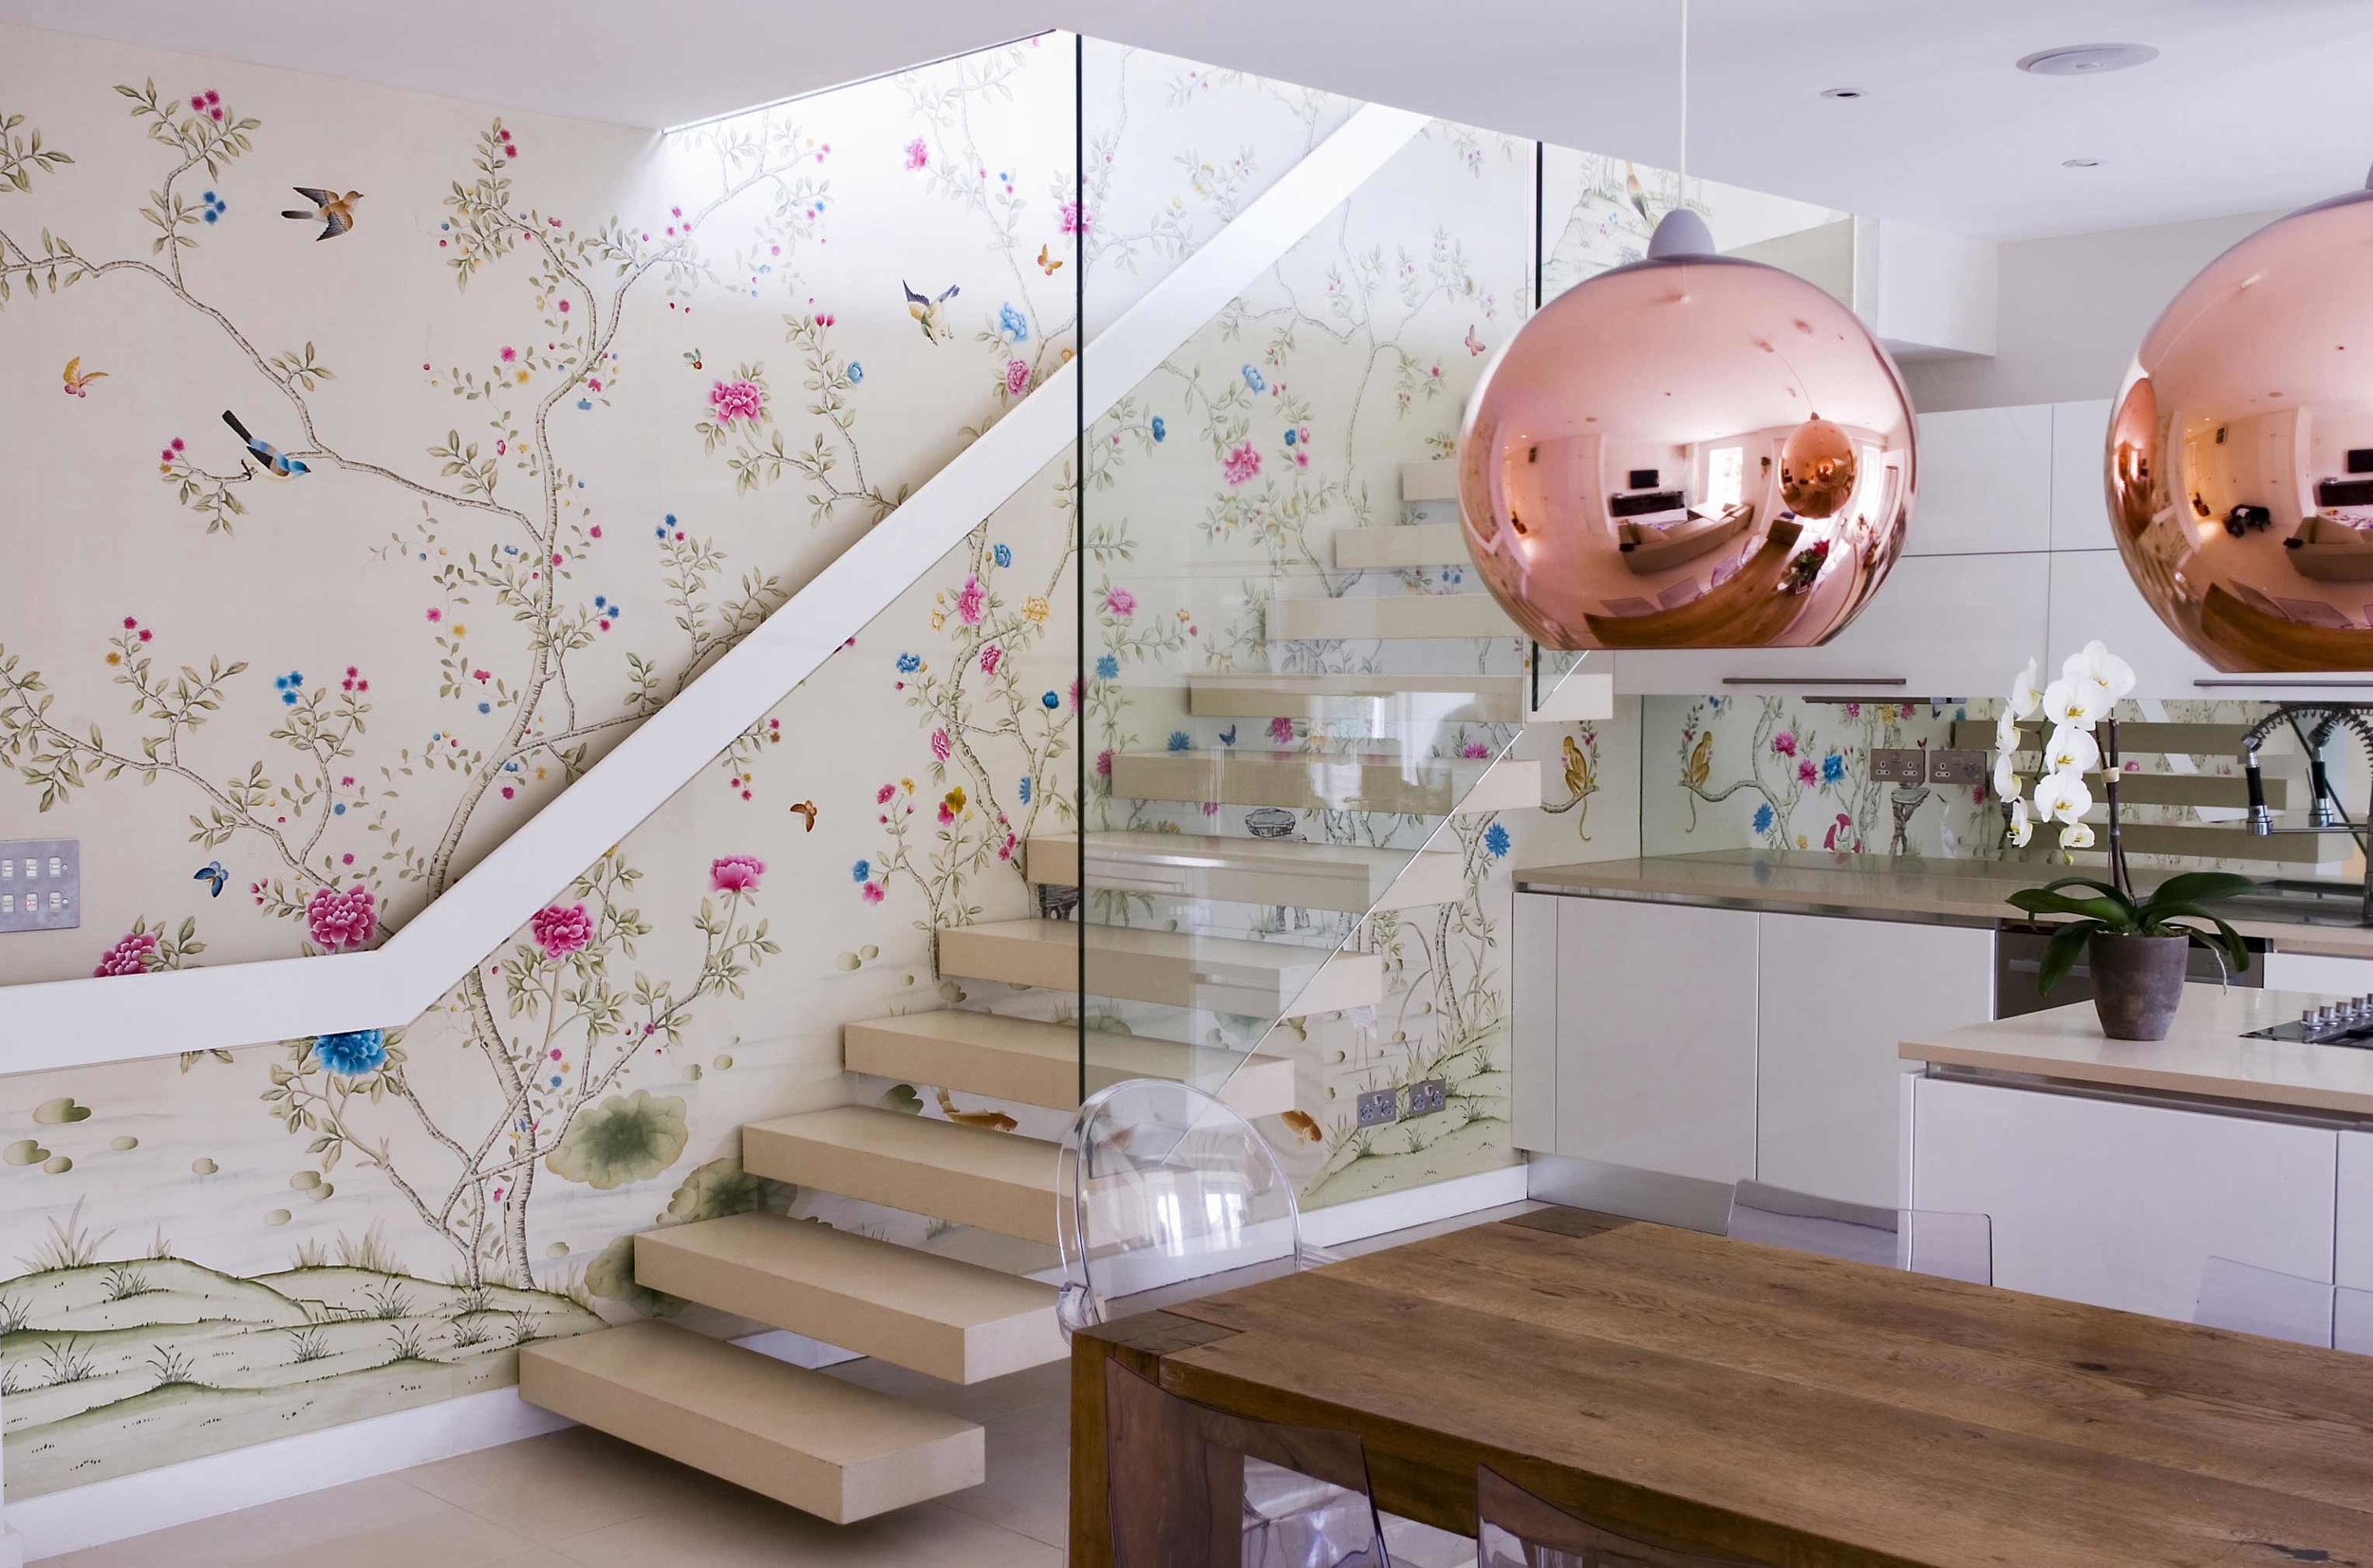 To-die-for kitchen (though that would defeat the whole purpose) with Fromental wallpaper